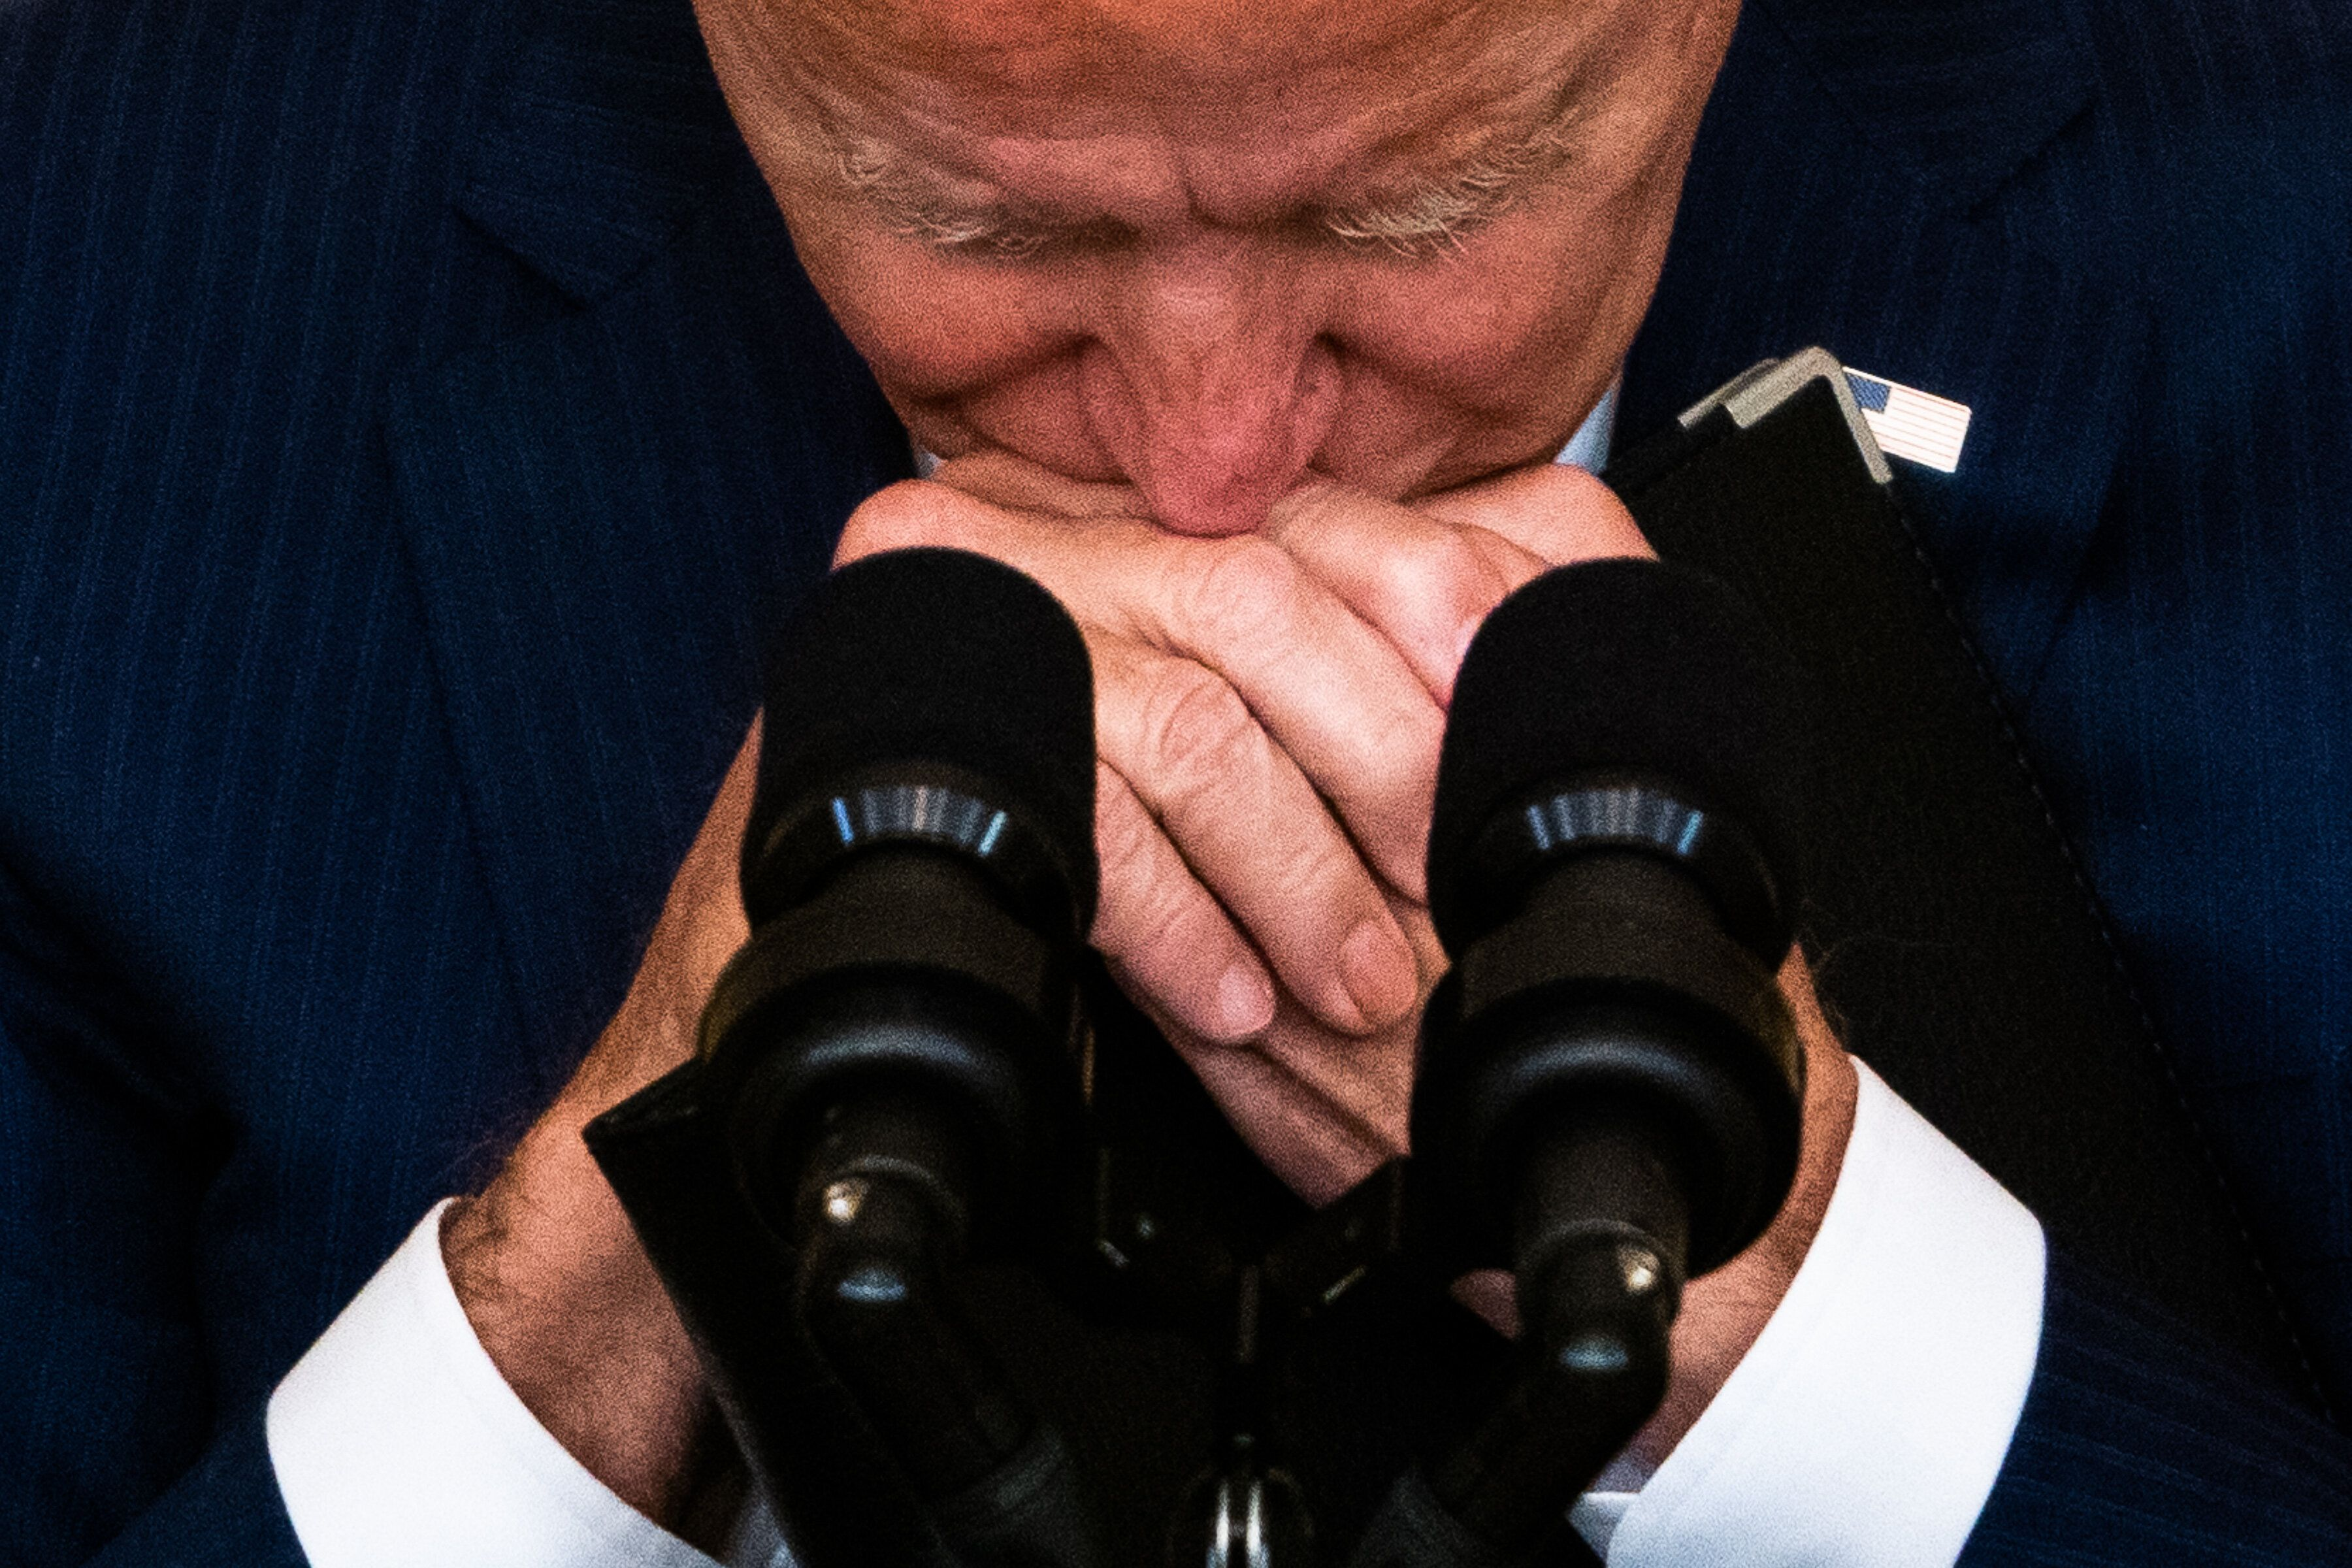 President Joe Biden takes a moment during questioning following his remarks regarding the U.S. service members killed in a te